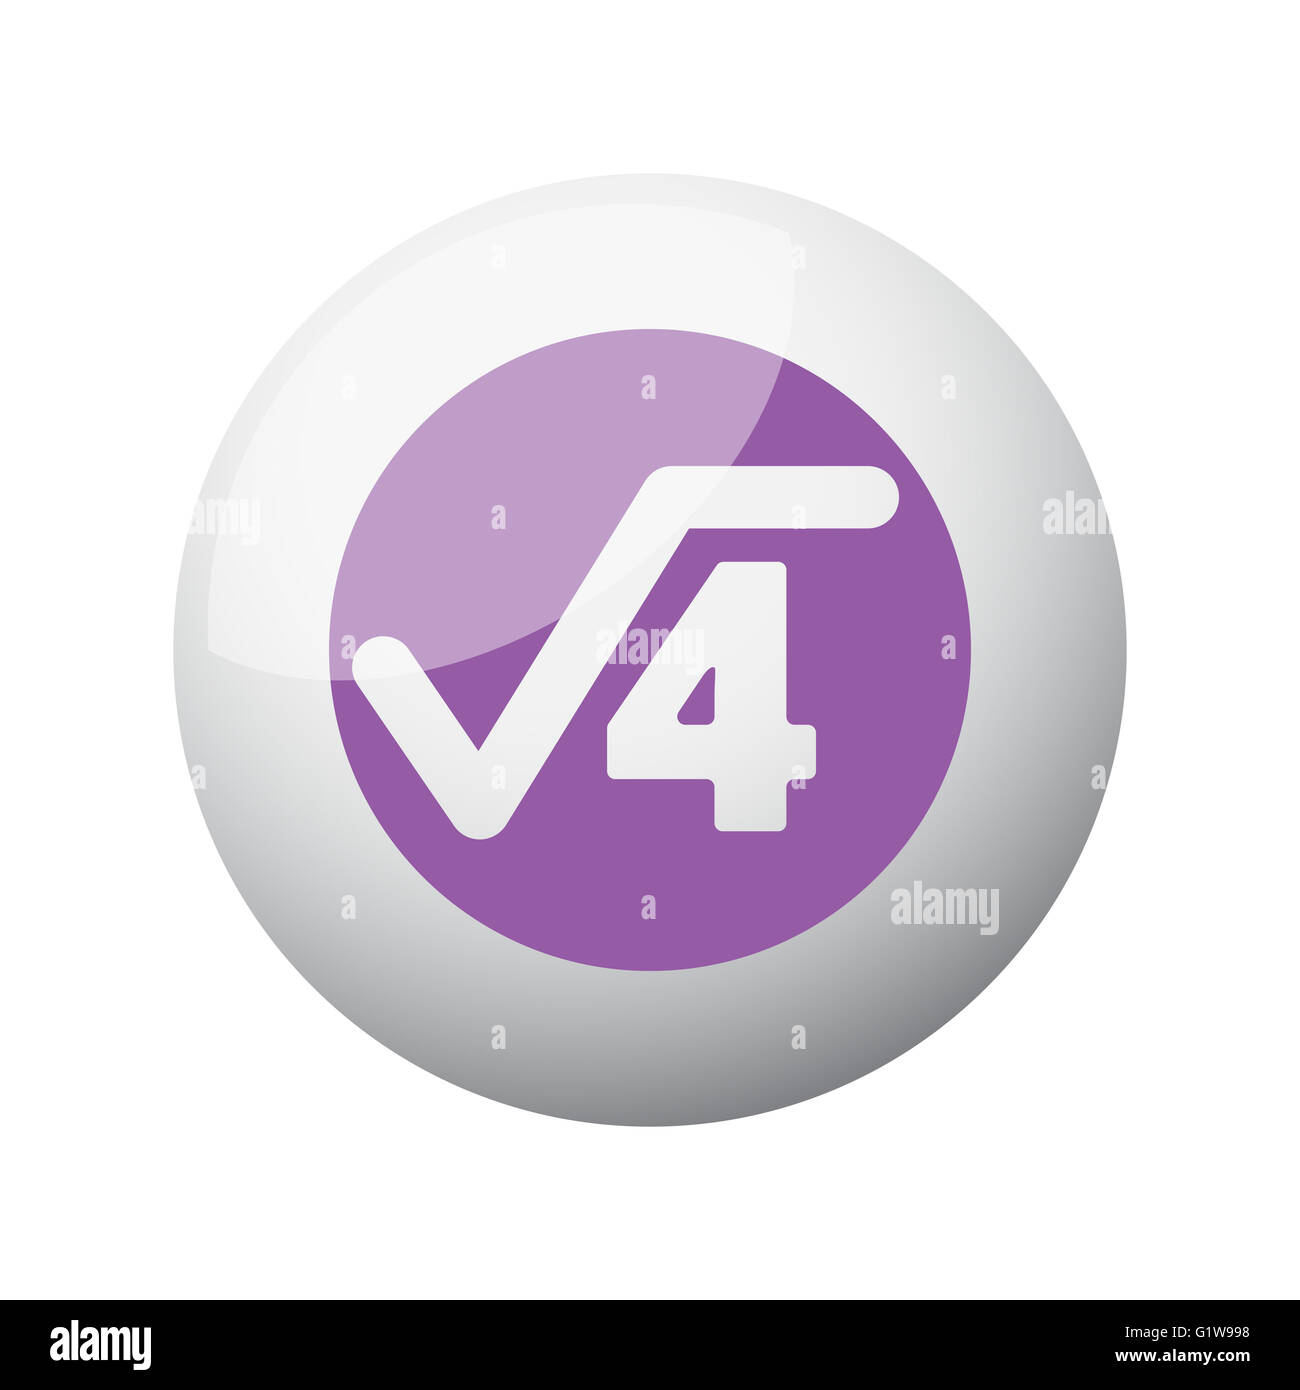 Flat purple square root icon on 3d sphere stock photo royalty free flat purple square root icon on 3d sphere buycottarizona Images